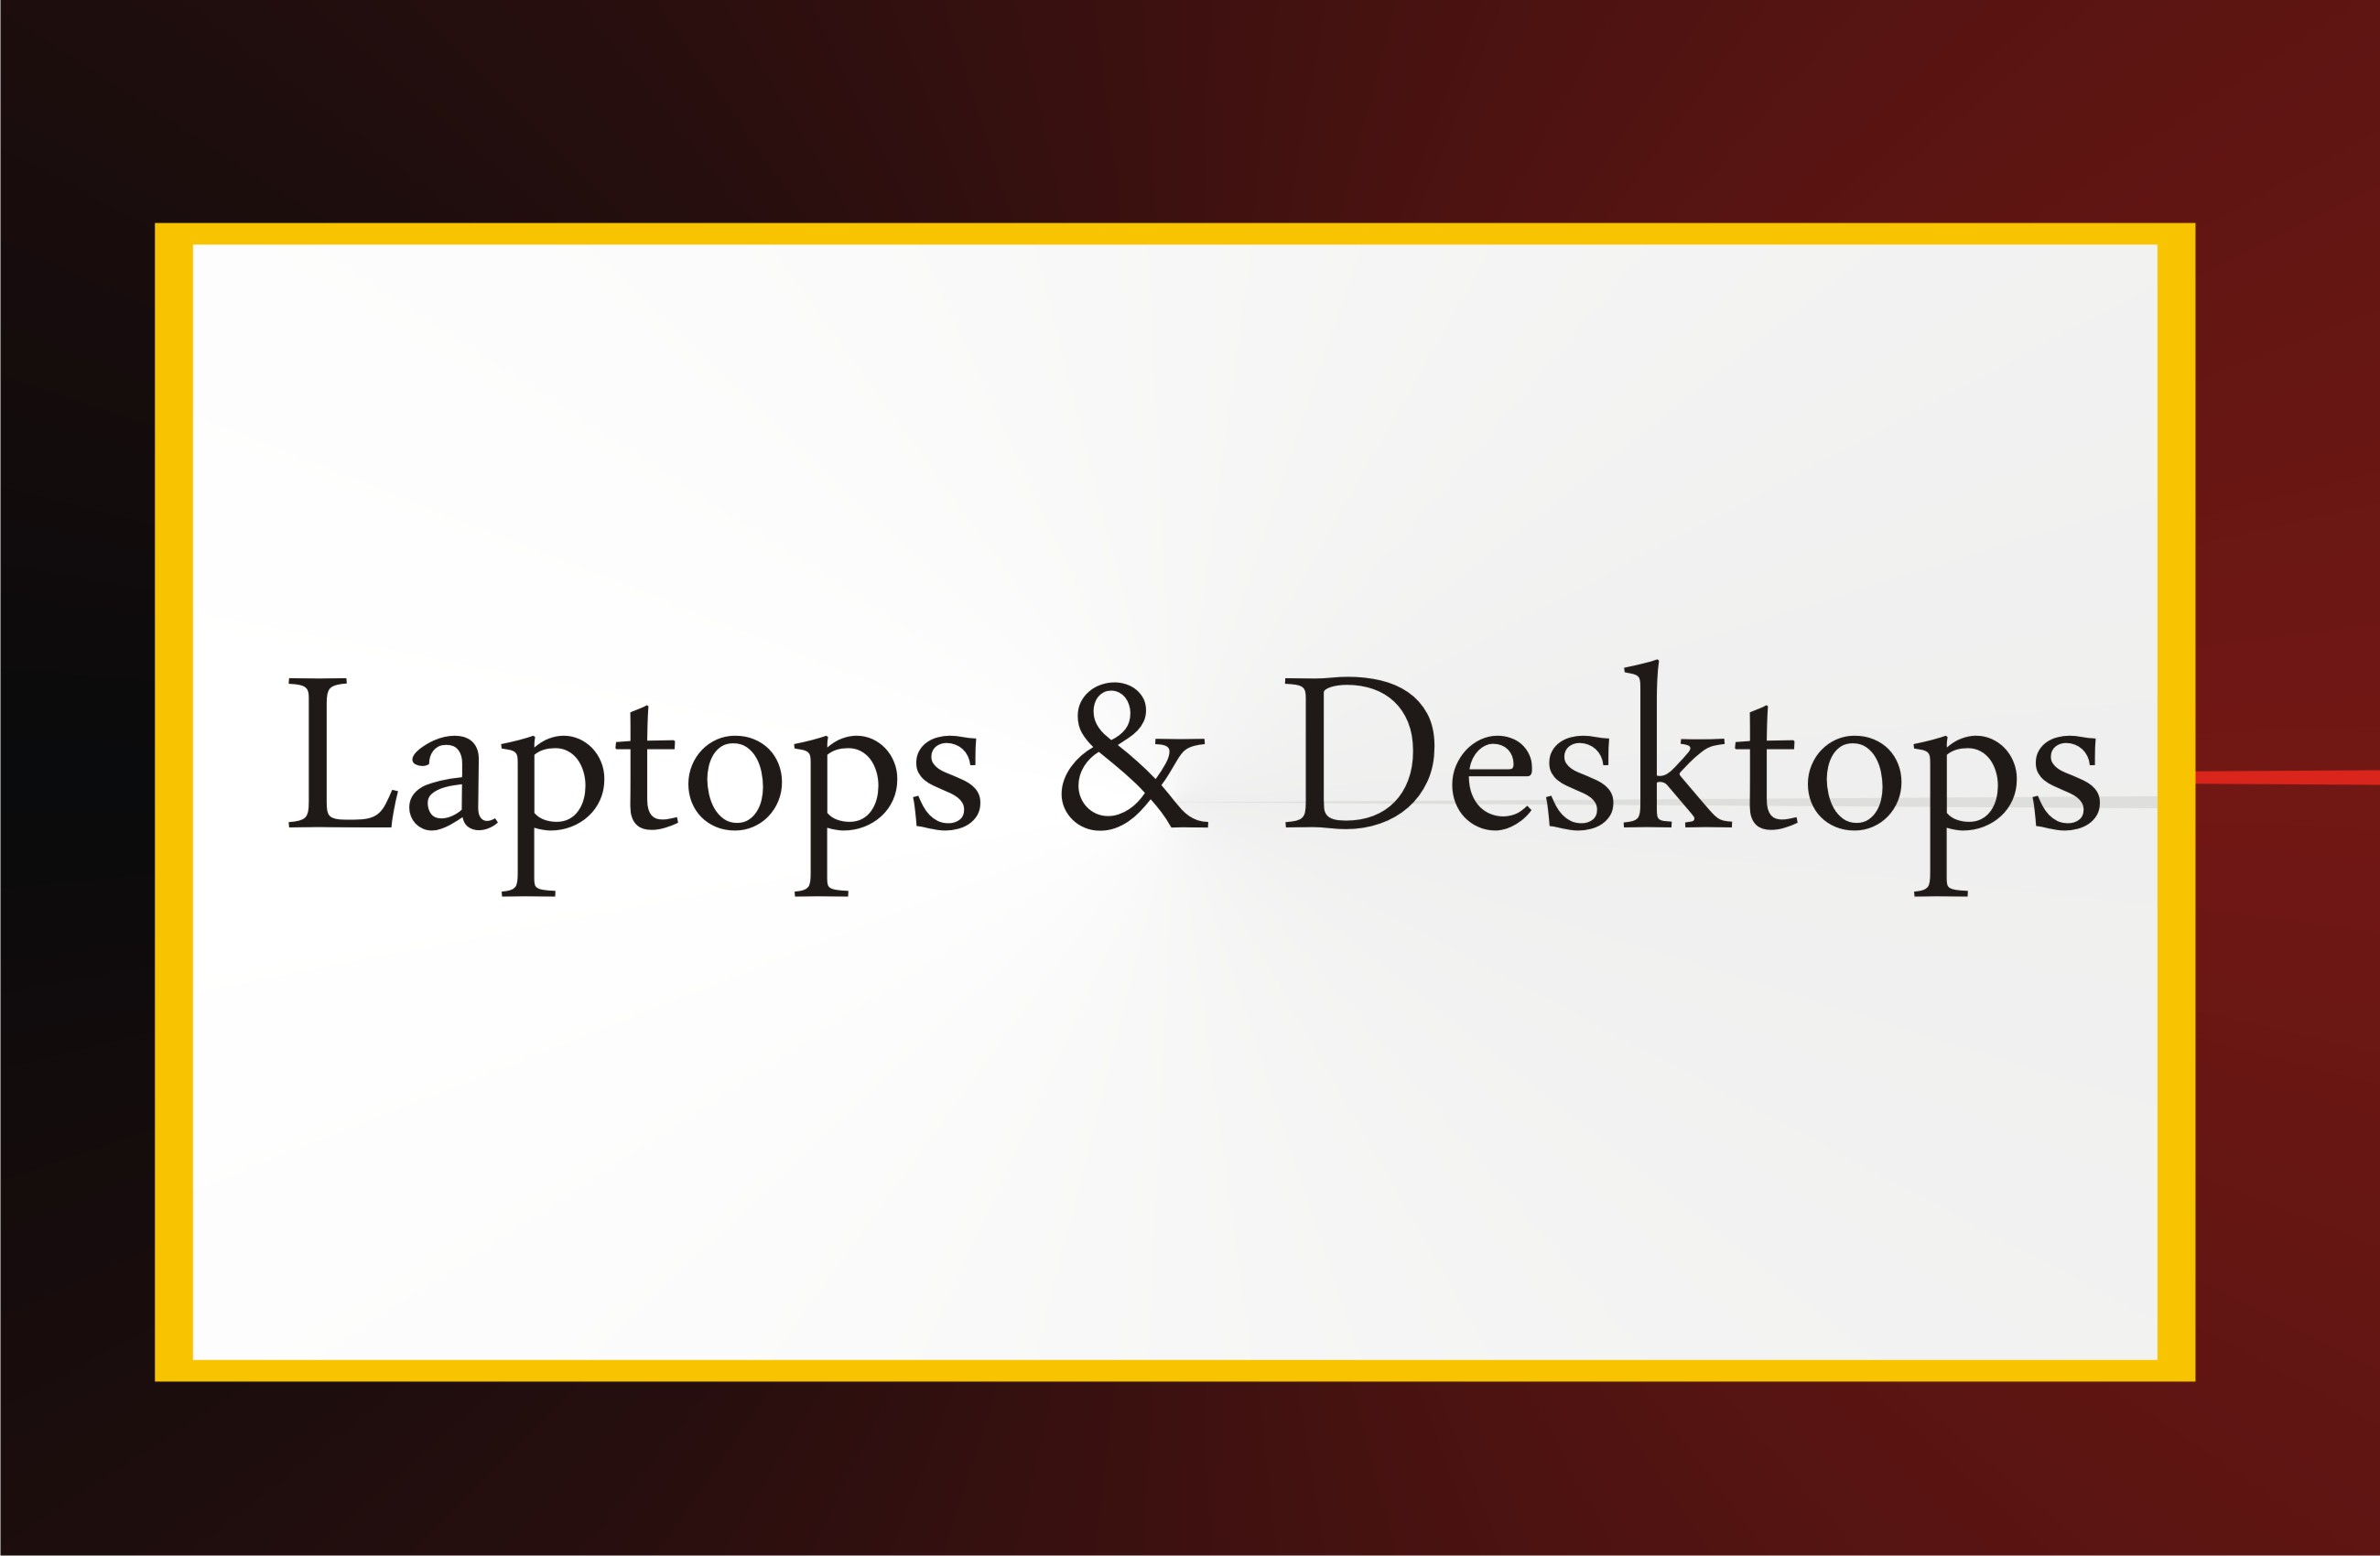 Laptop & Desktops